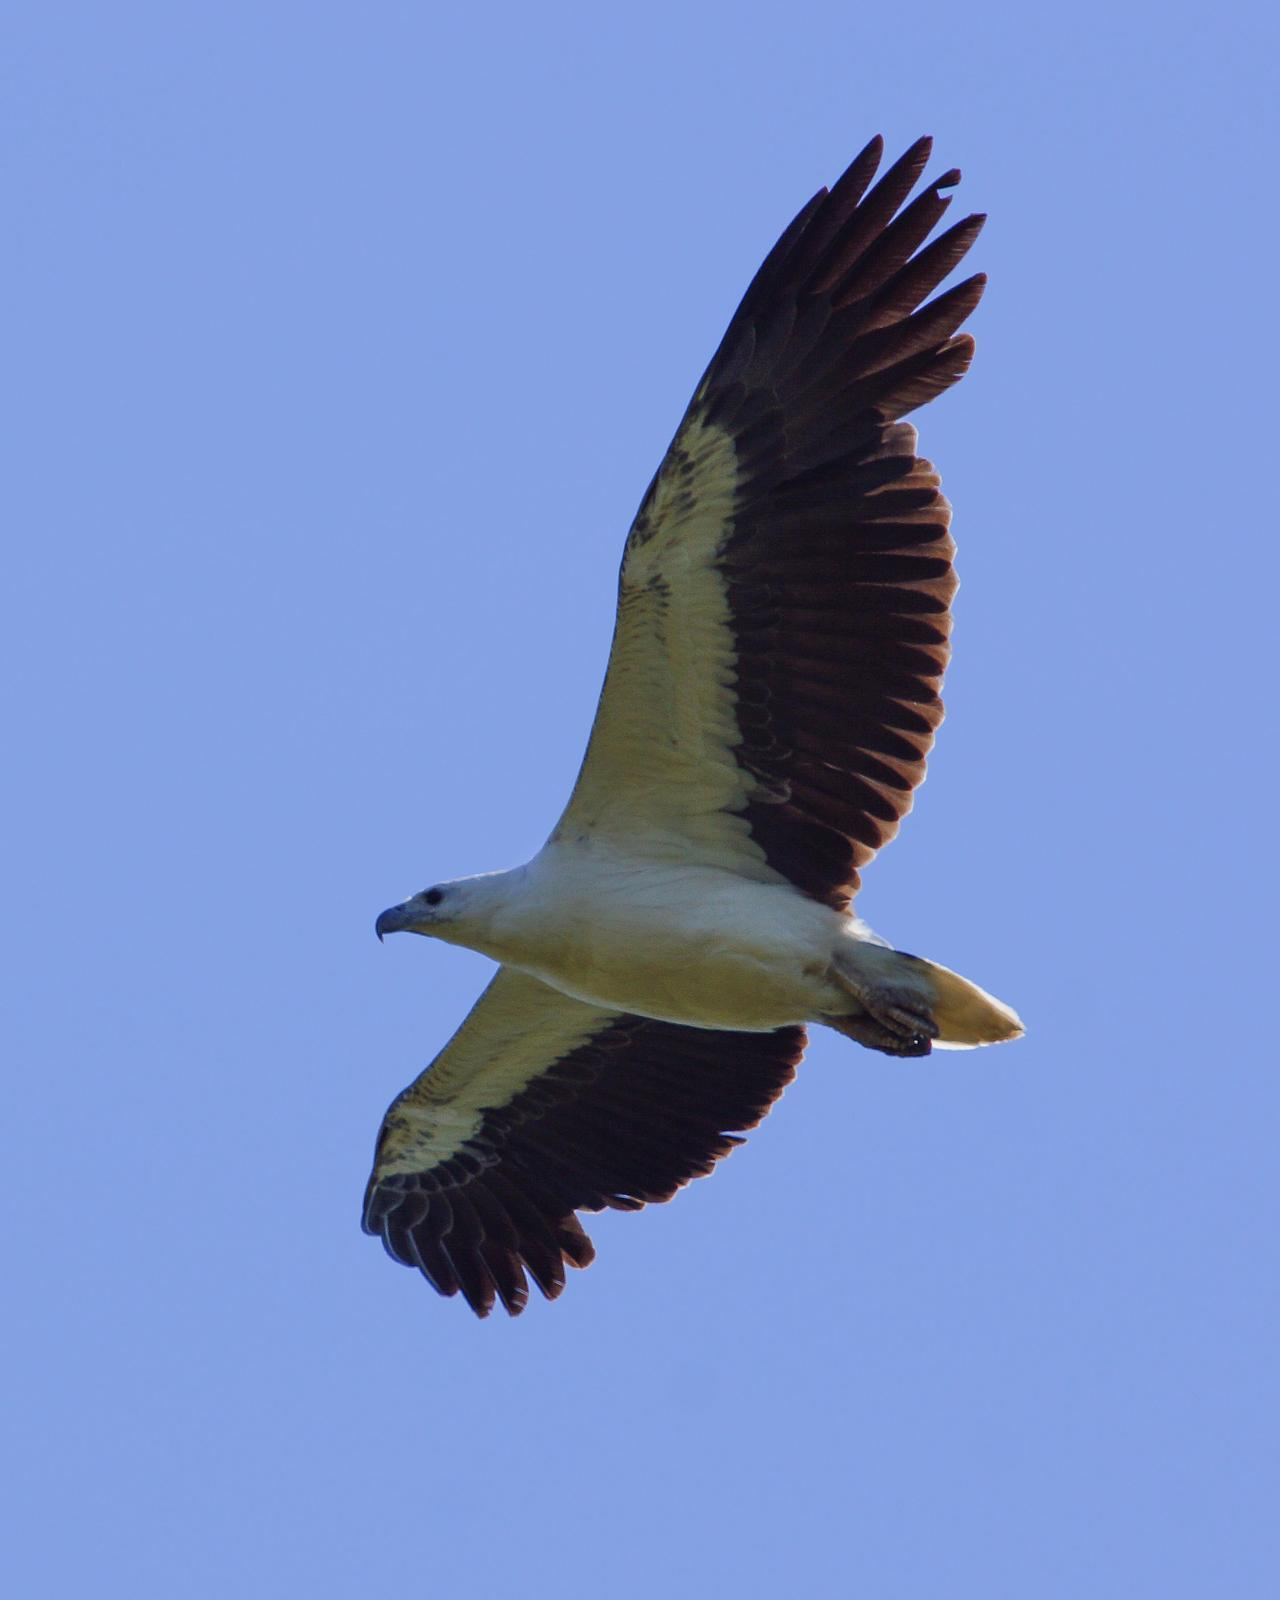 White-bellied Sea-Eagle Photo by Steve Percival